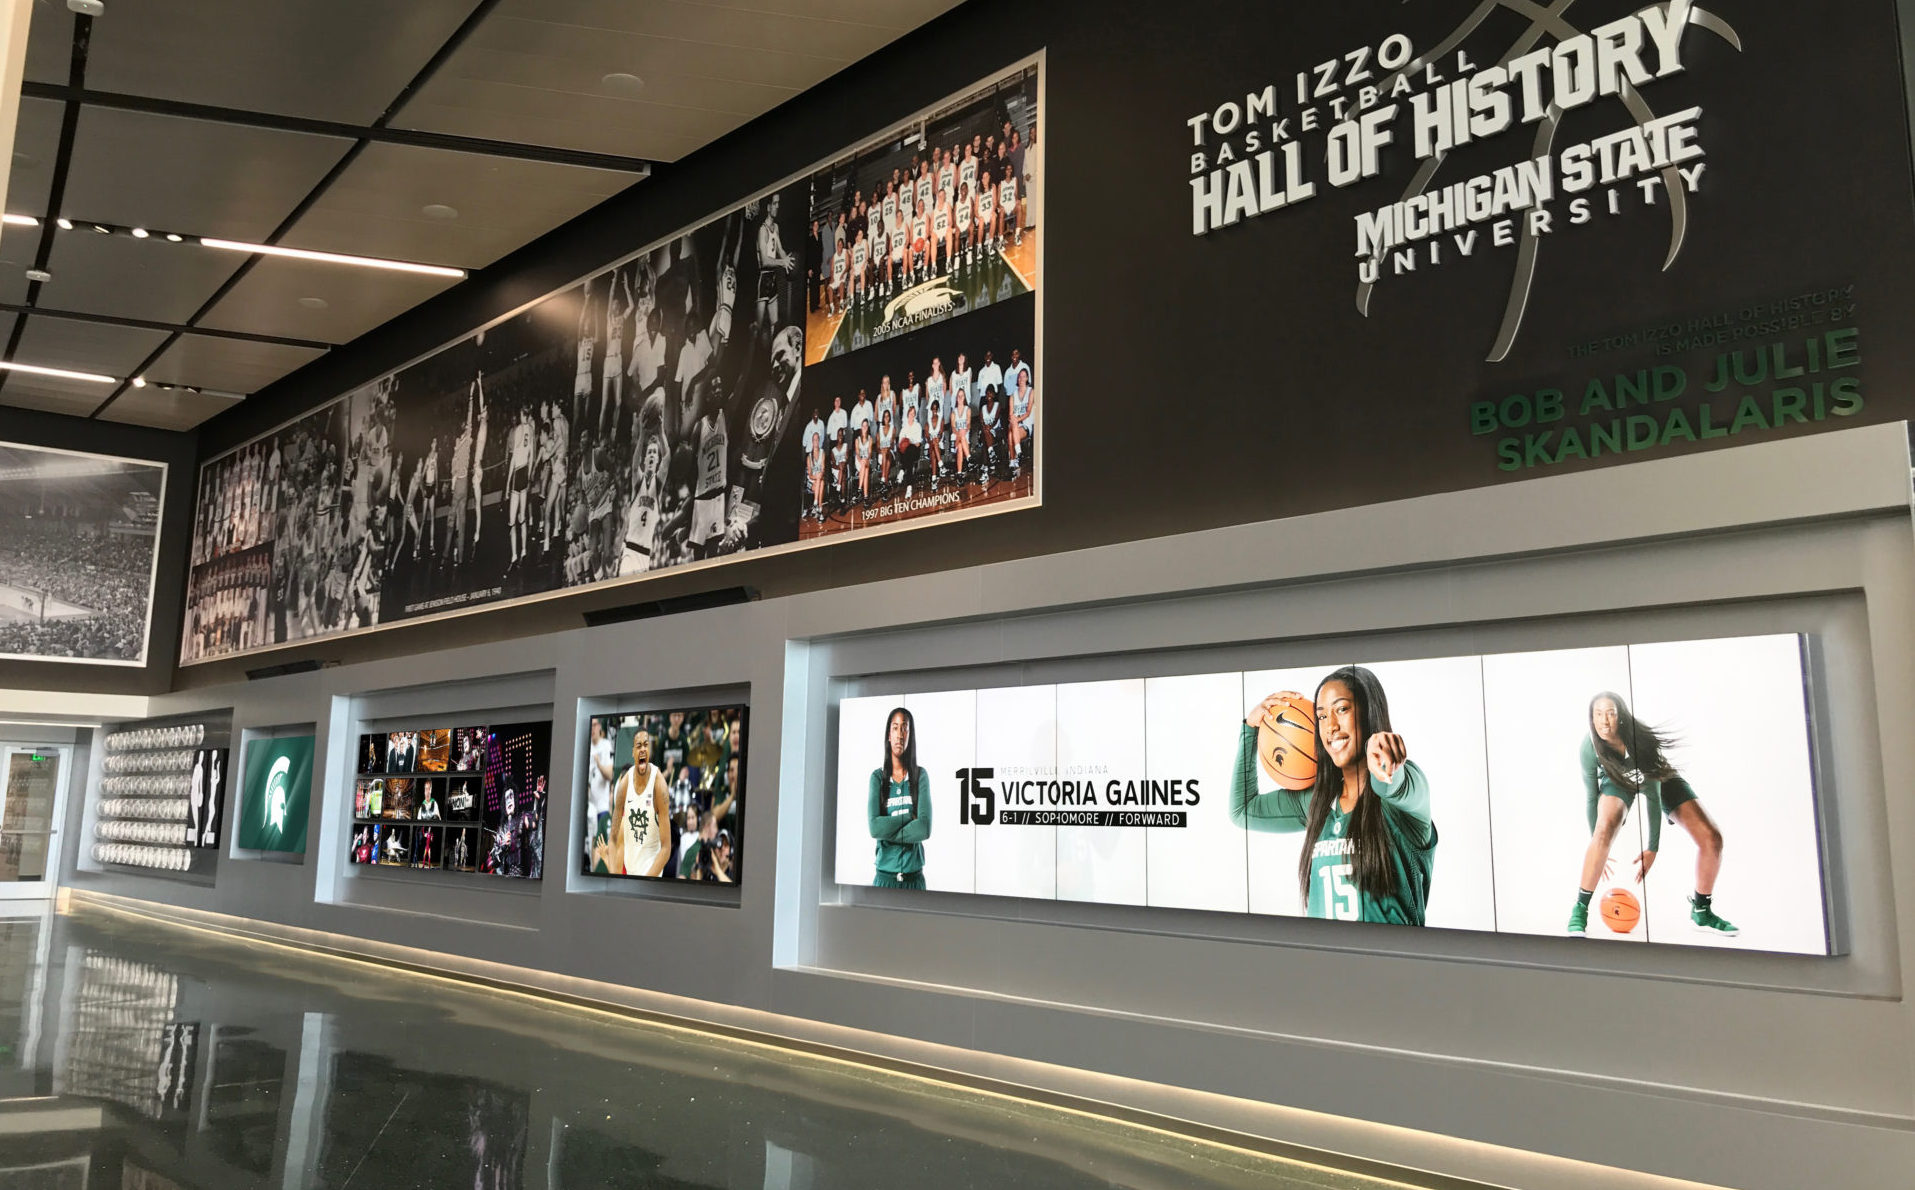 Michigan State Breslin Tom Izzo Hall of History